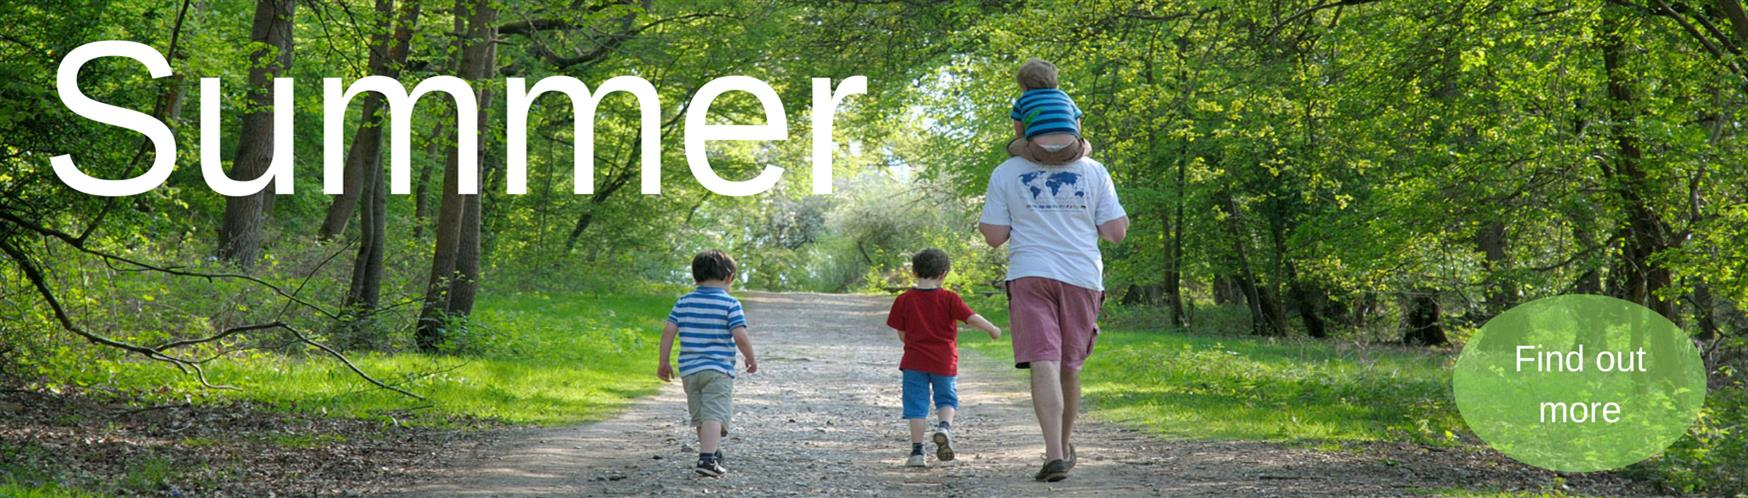 Summer Fun in Surrey - events and things to do this summer